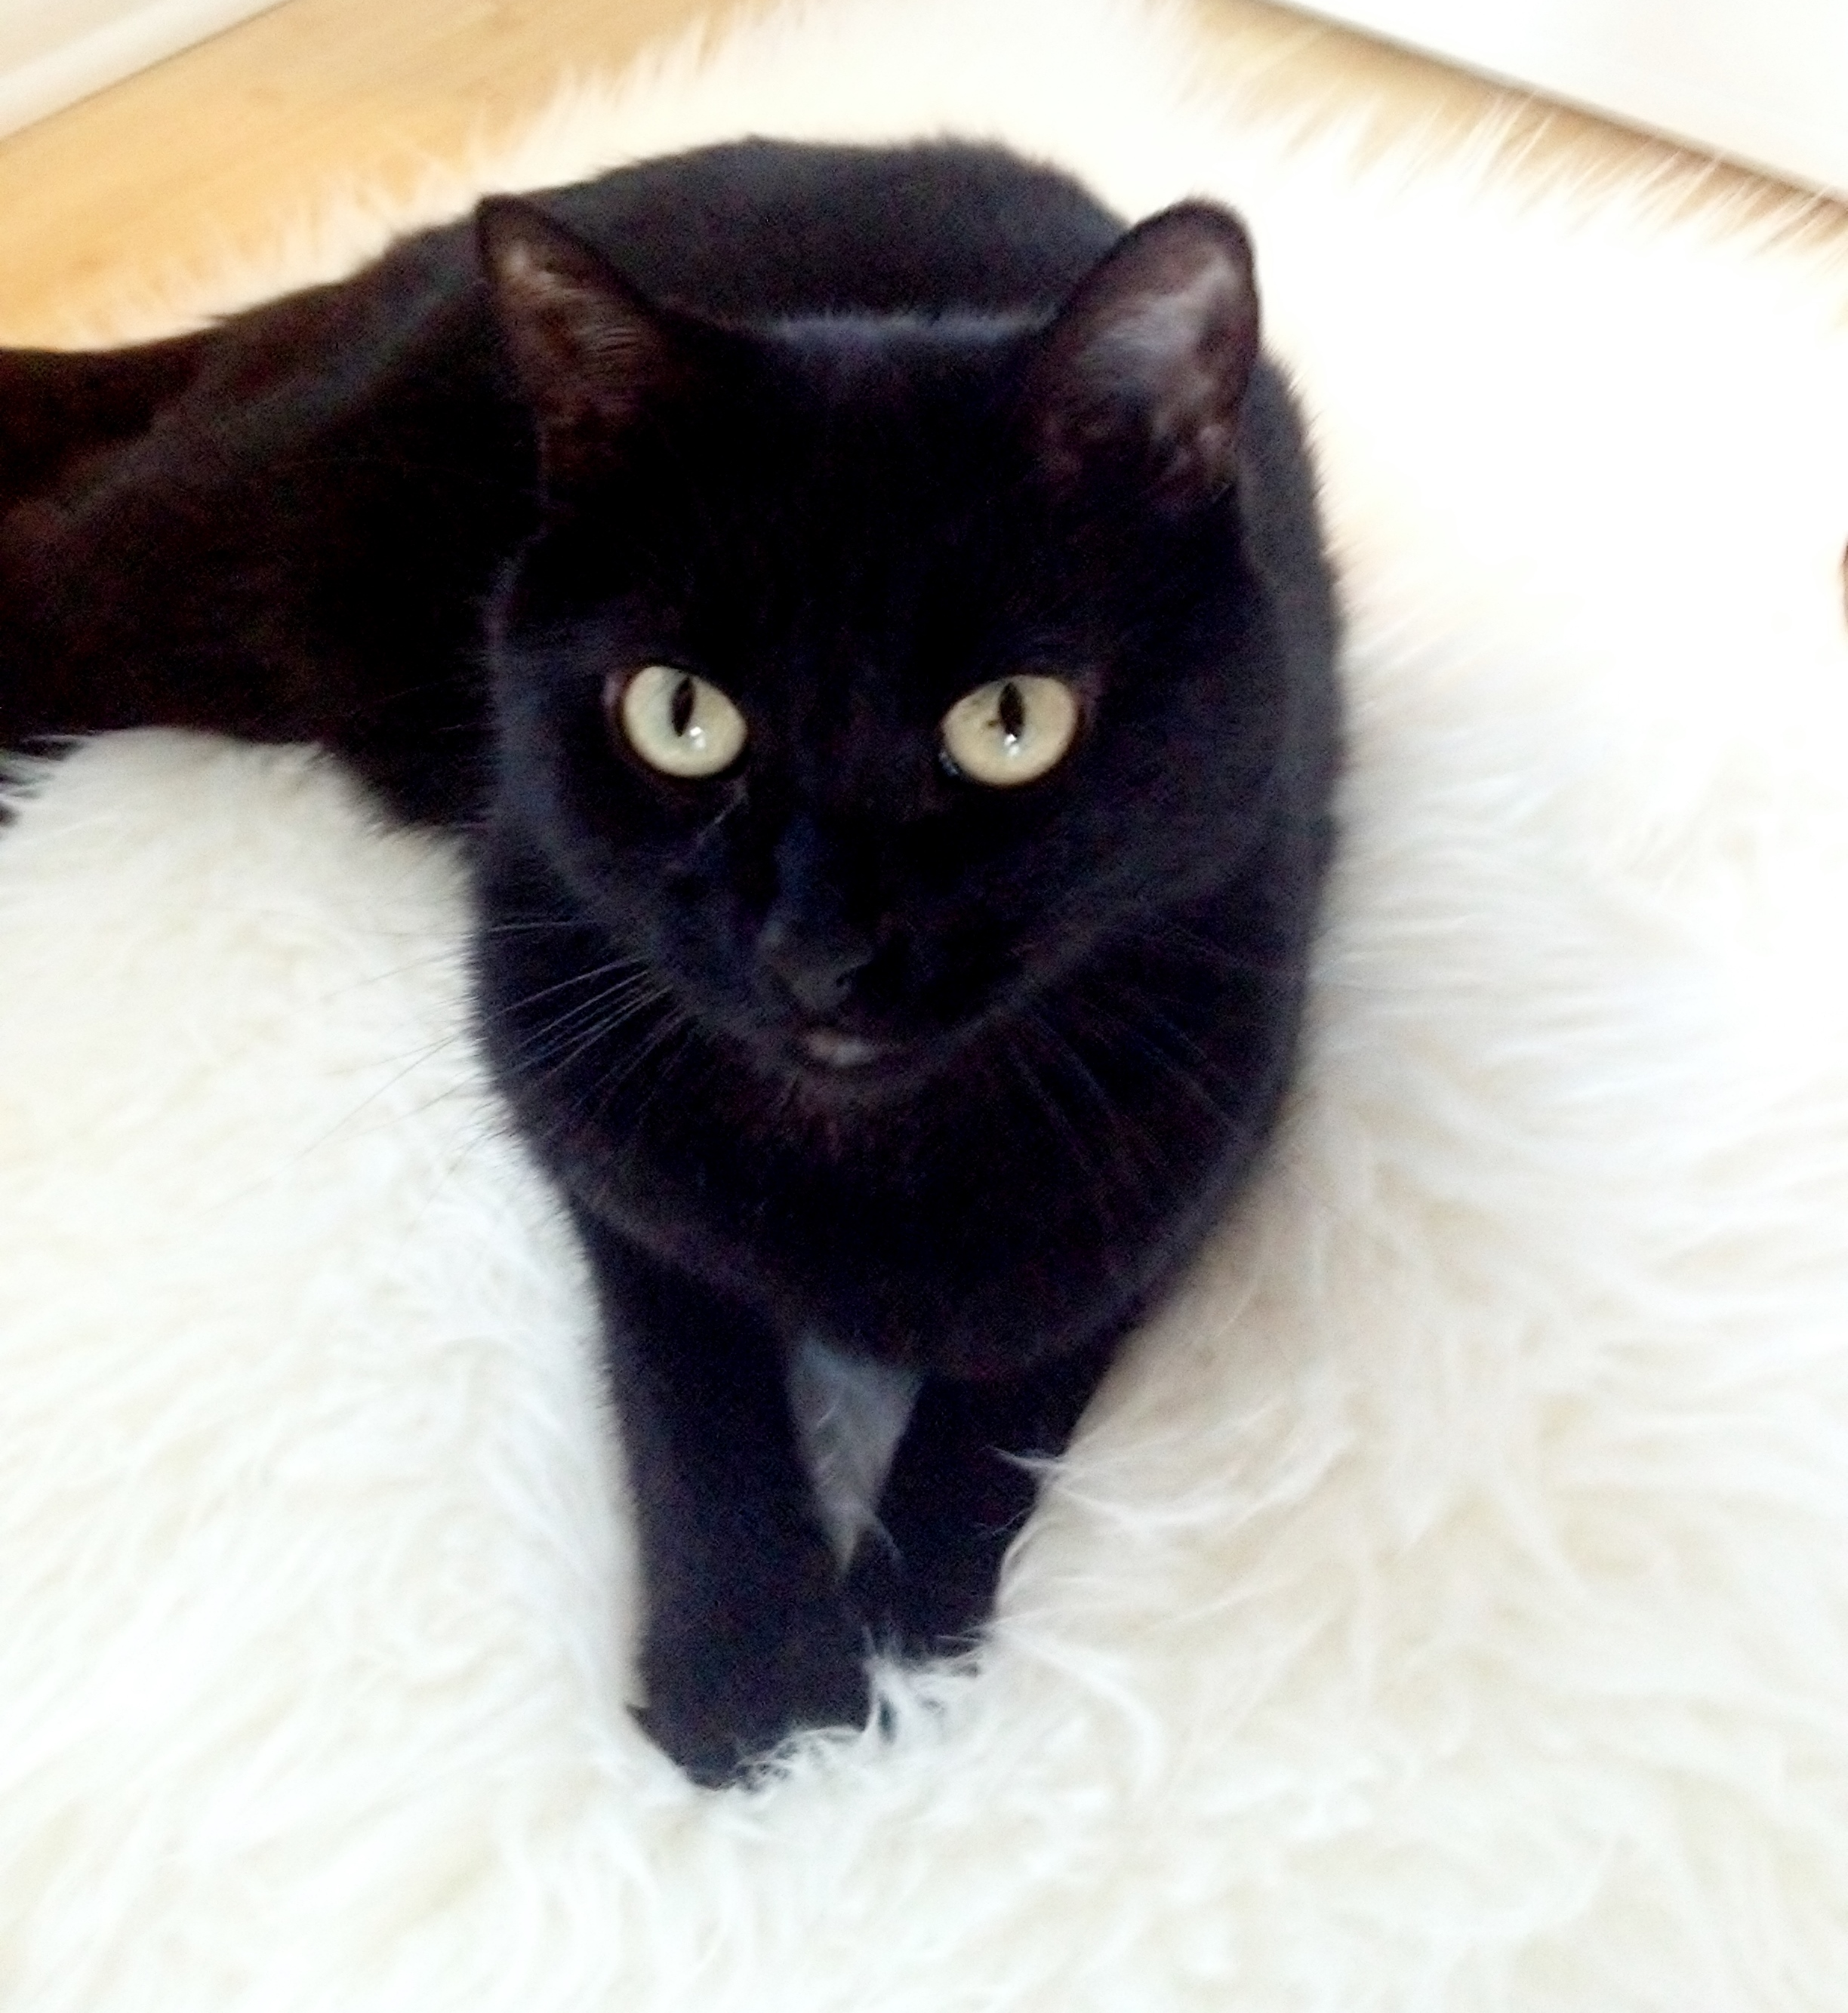 Black Cat on a White Fur Rug Ciaran